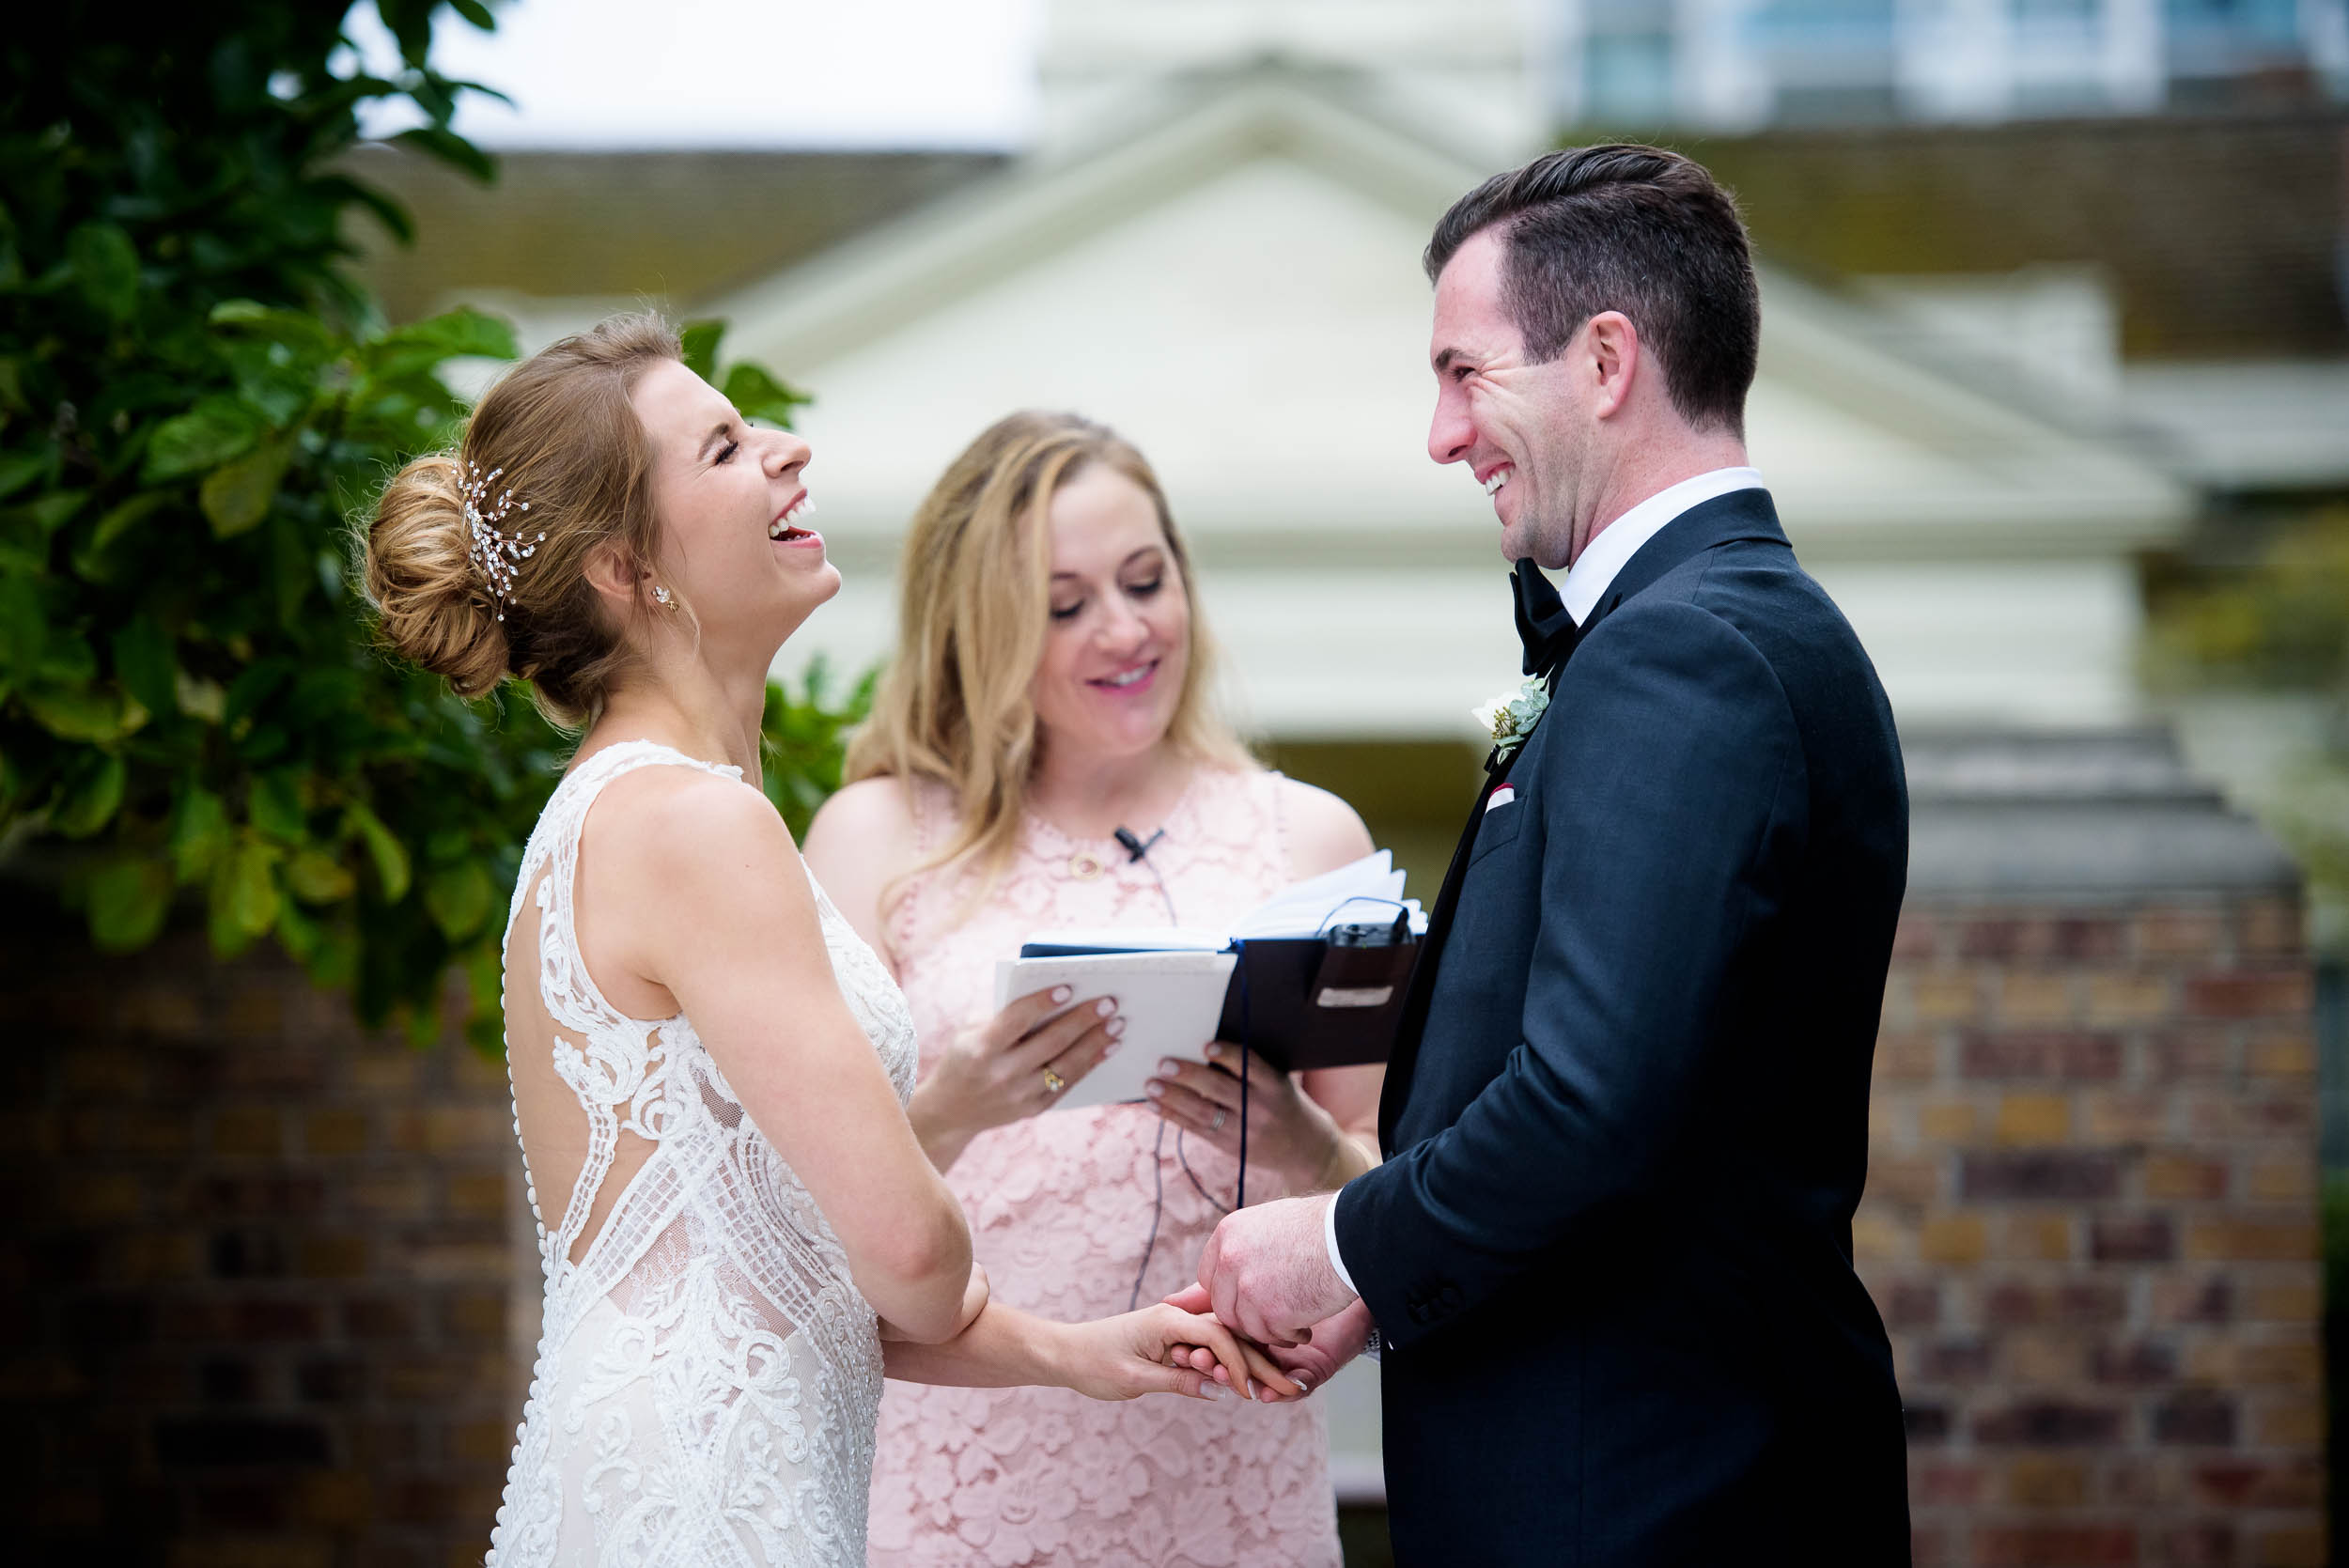 Bride and groom share a laugh during a Glessner House Chicago wedding ceremony.